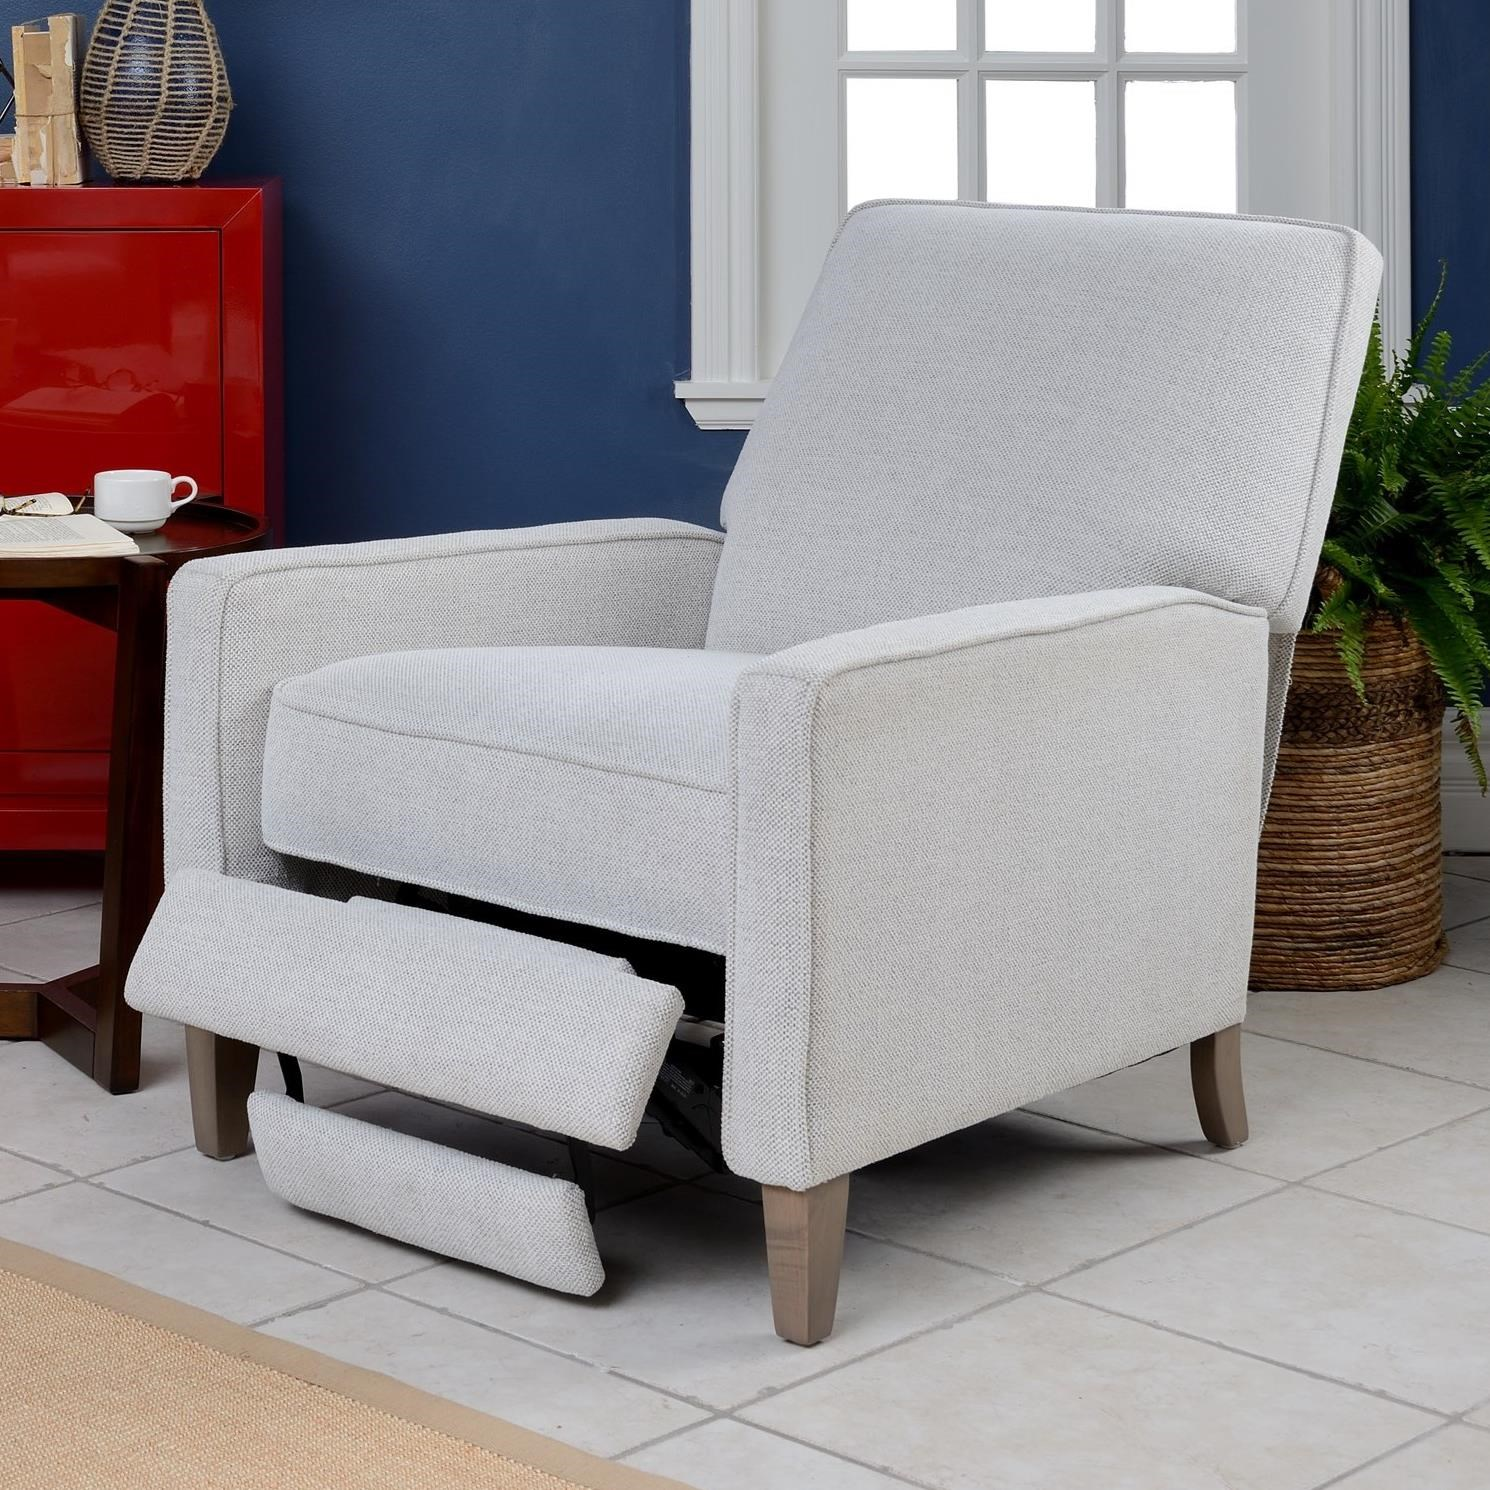 7612 Power Recliner by Decor-Rest at Stoney Creek Furniture